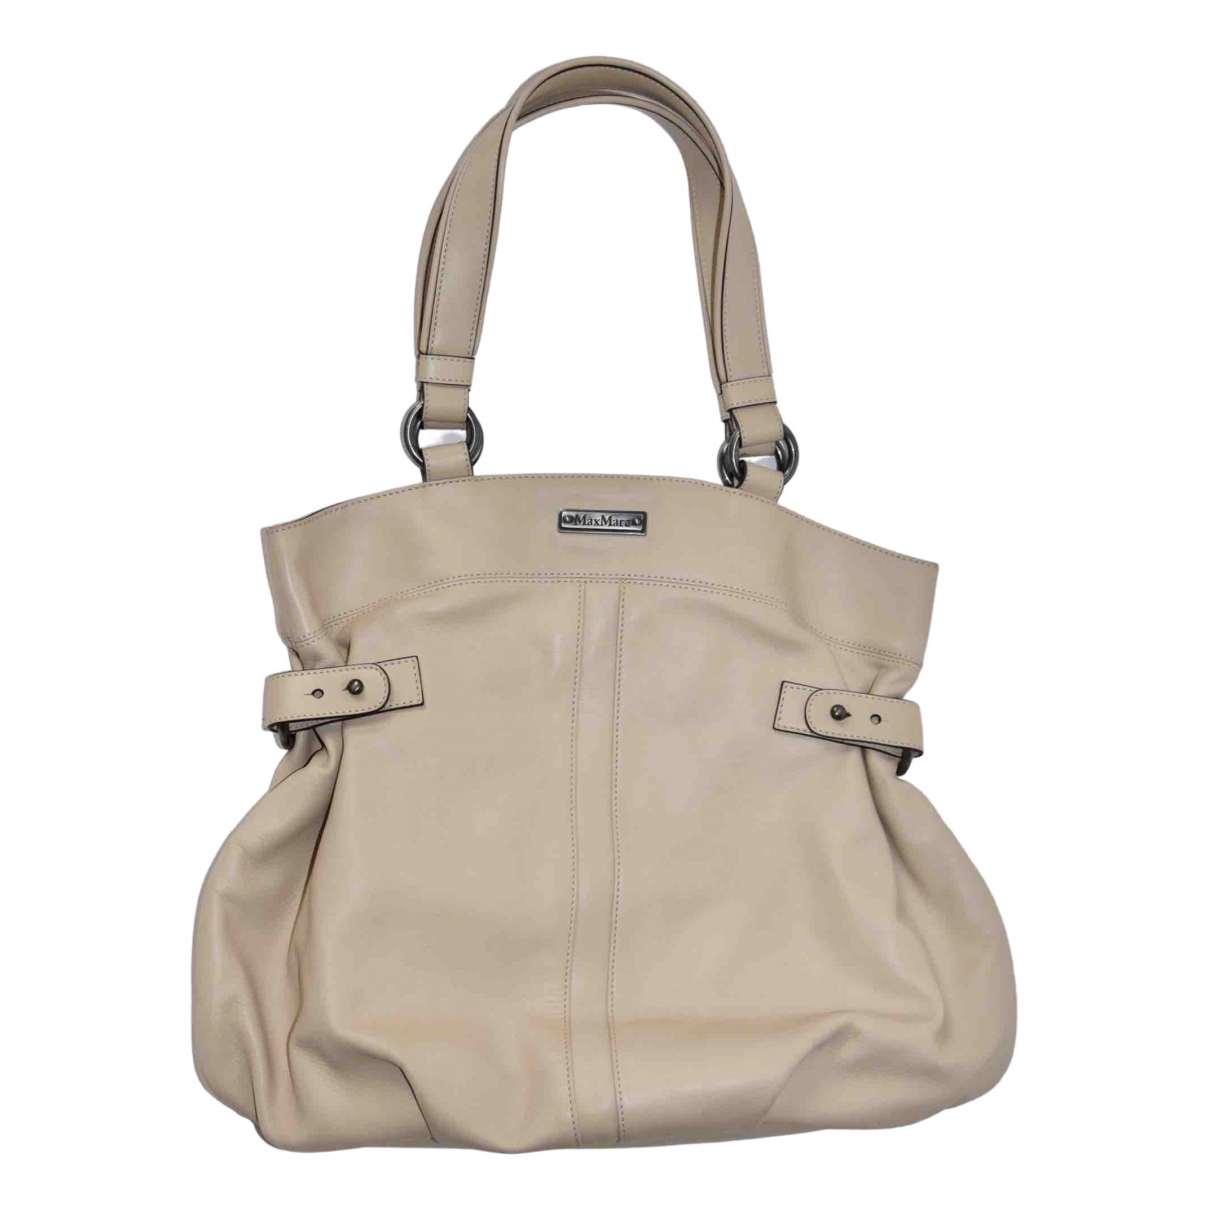 Max Mara \N Beige Leather handbag for Women \N